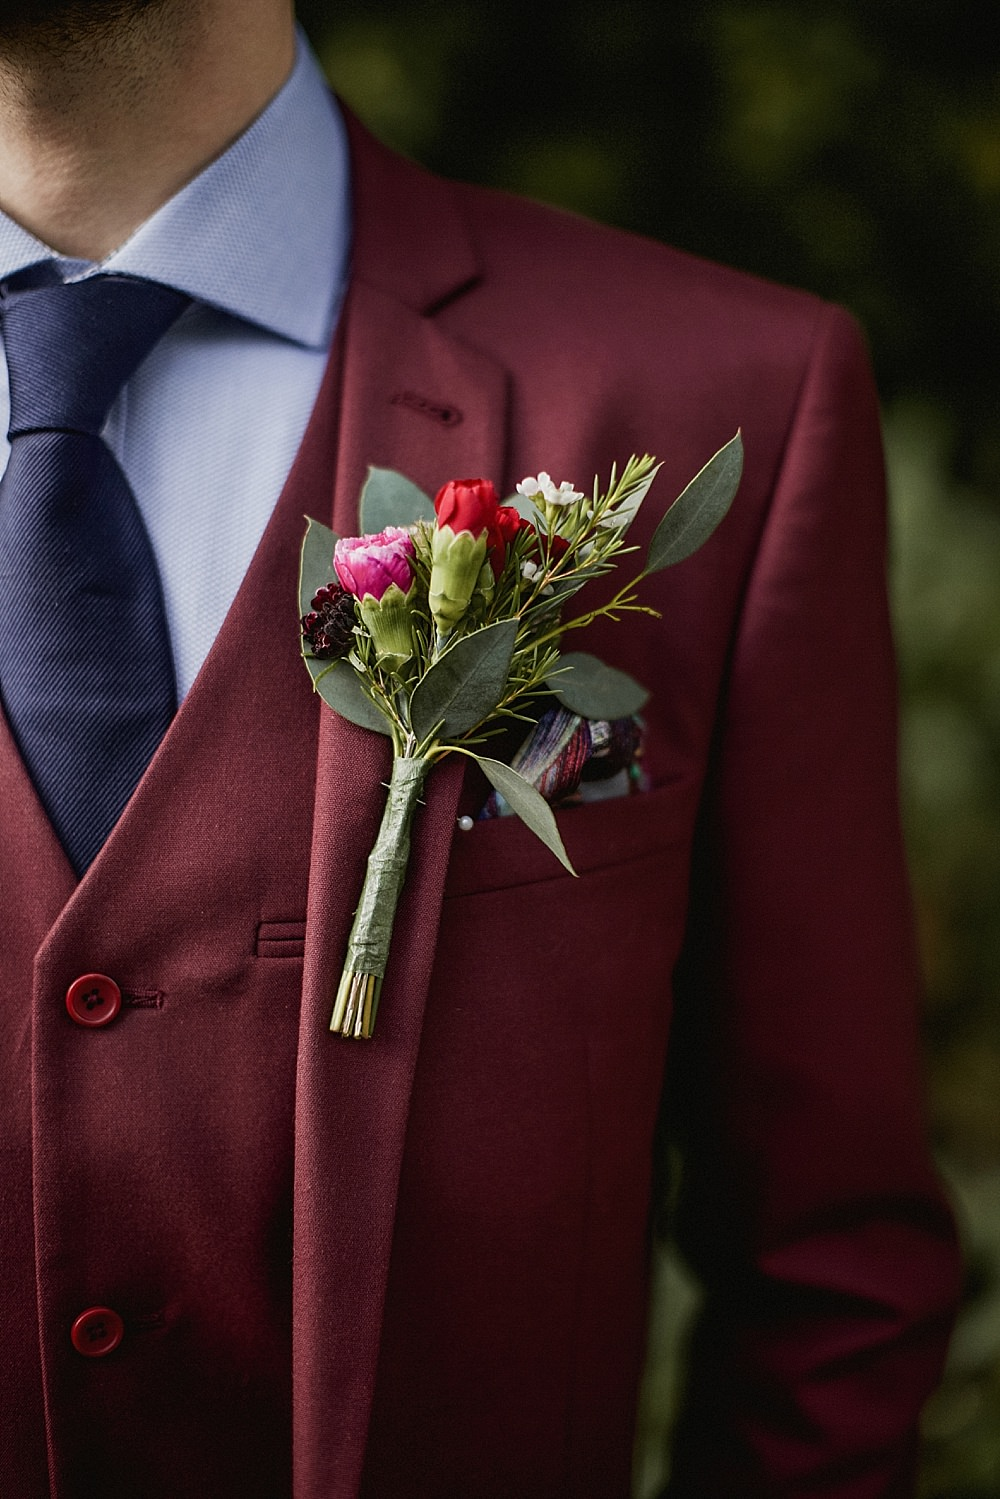 Groom Suit Burgundy Navy Tie Buttonhole Flowers Abbeydale Picture House Wedding We Are Da Silva